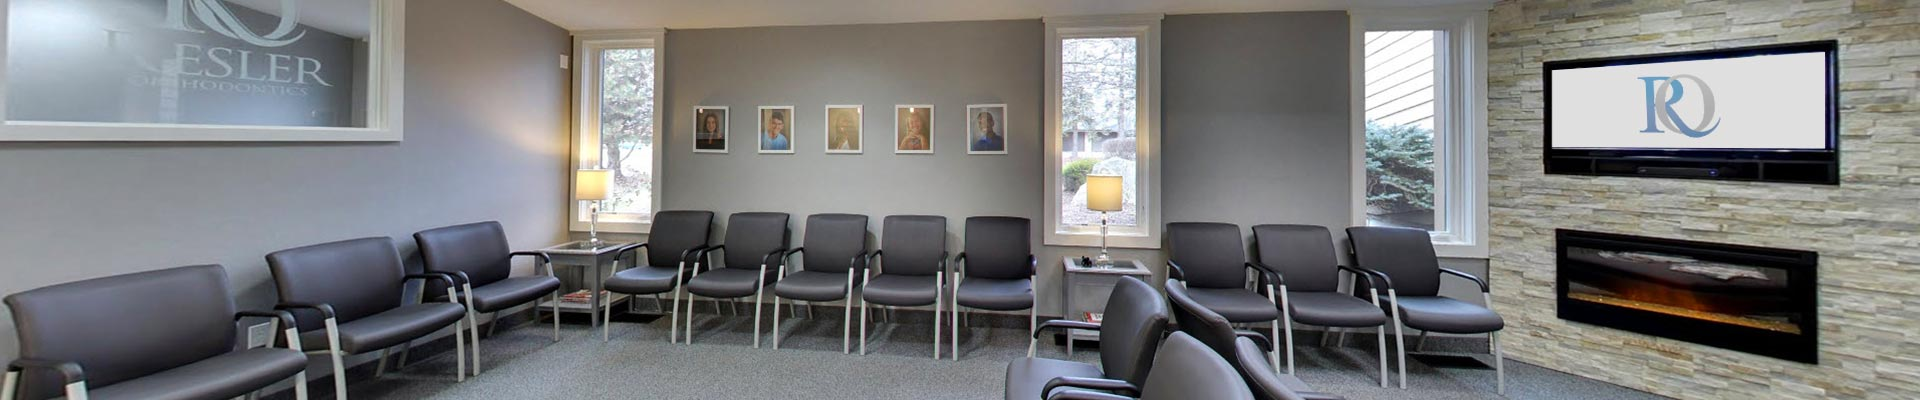 Contact Us waiting Room at Resler Orthodontics in Saginaw and Clio MI